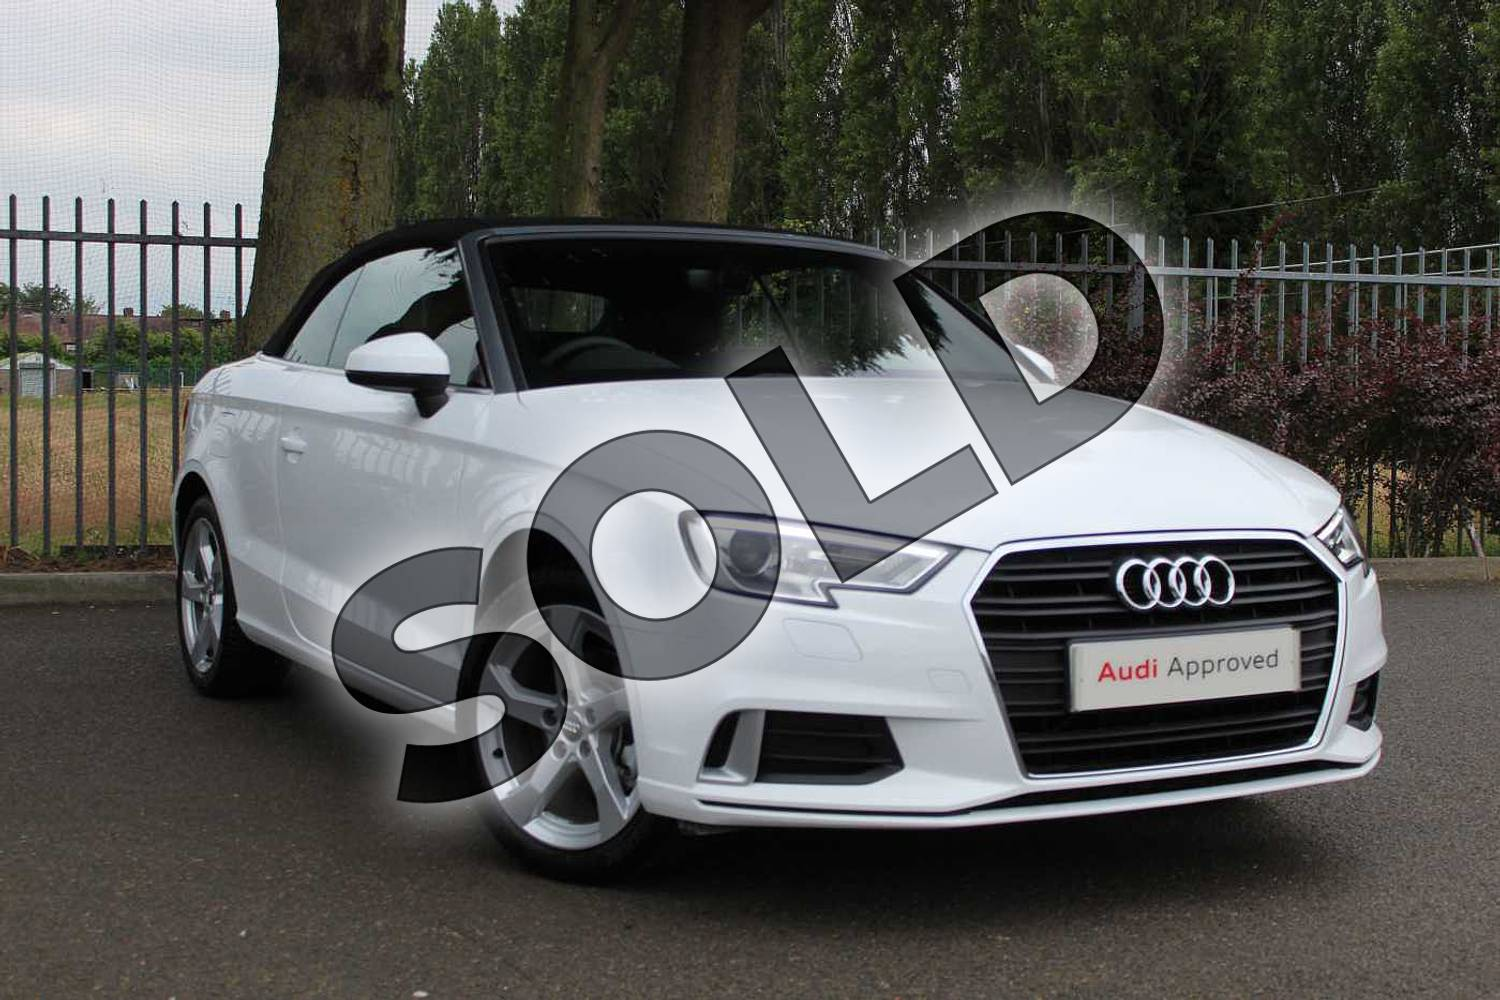 2019 Audi A3 Cabriolet 35 TFSI Sport 2dr in Ibis White at Coventry Audi